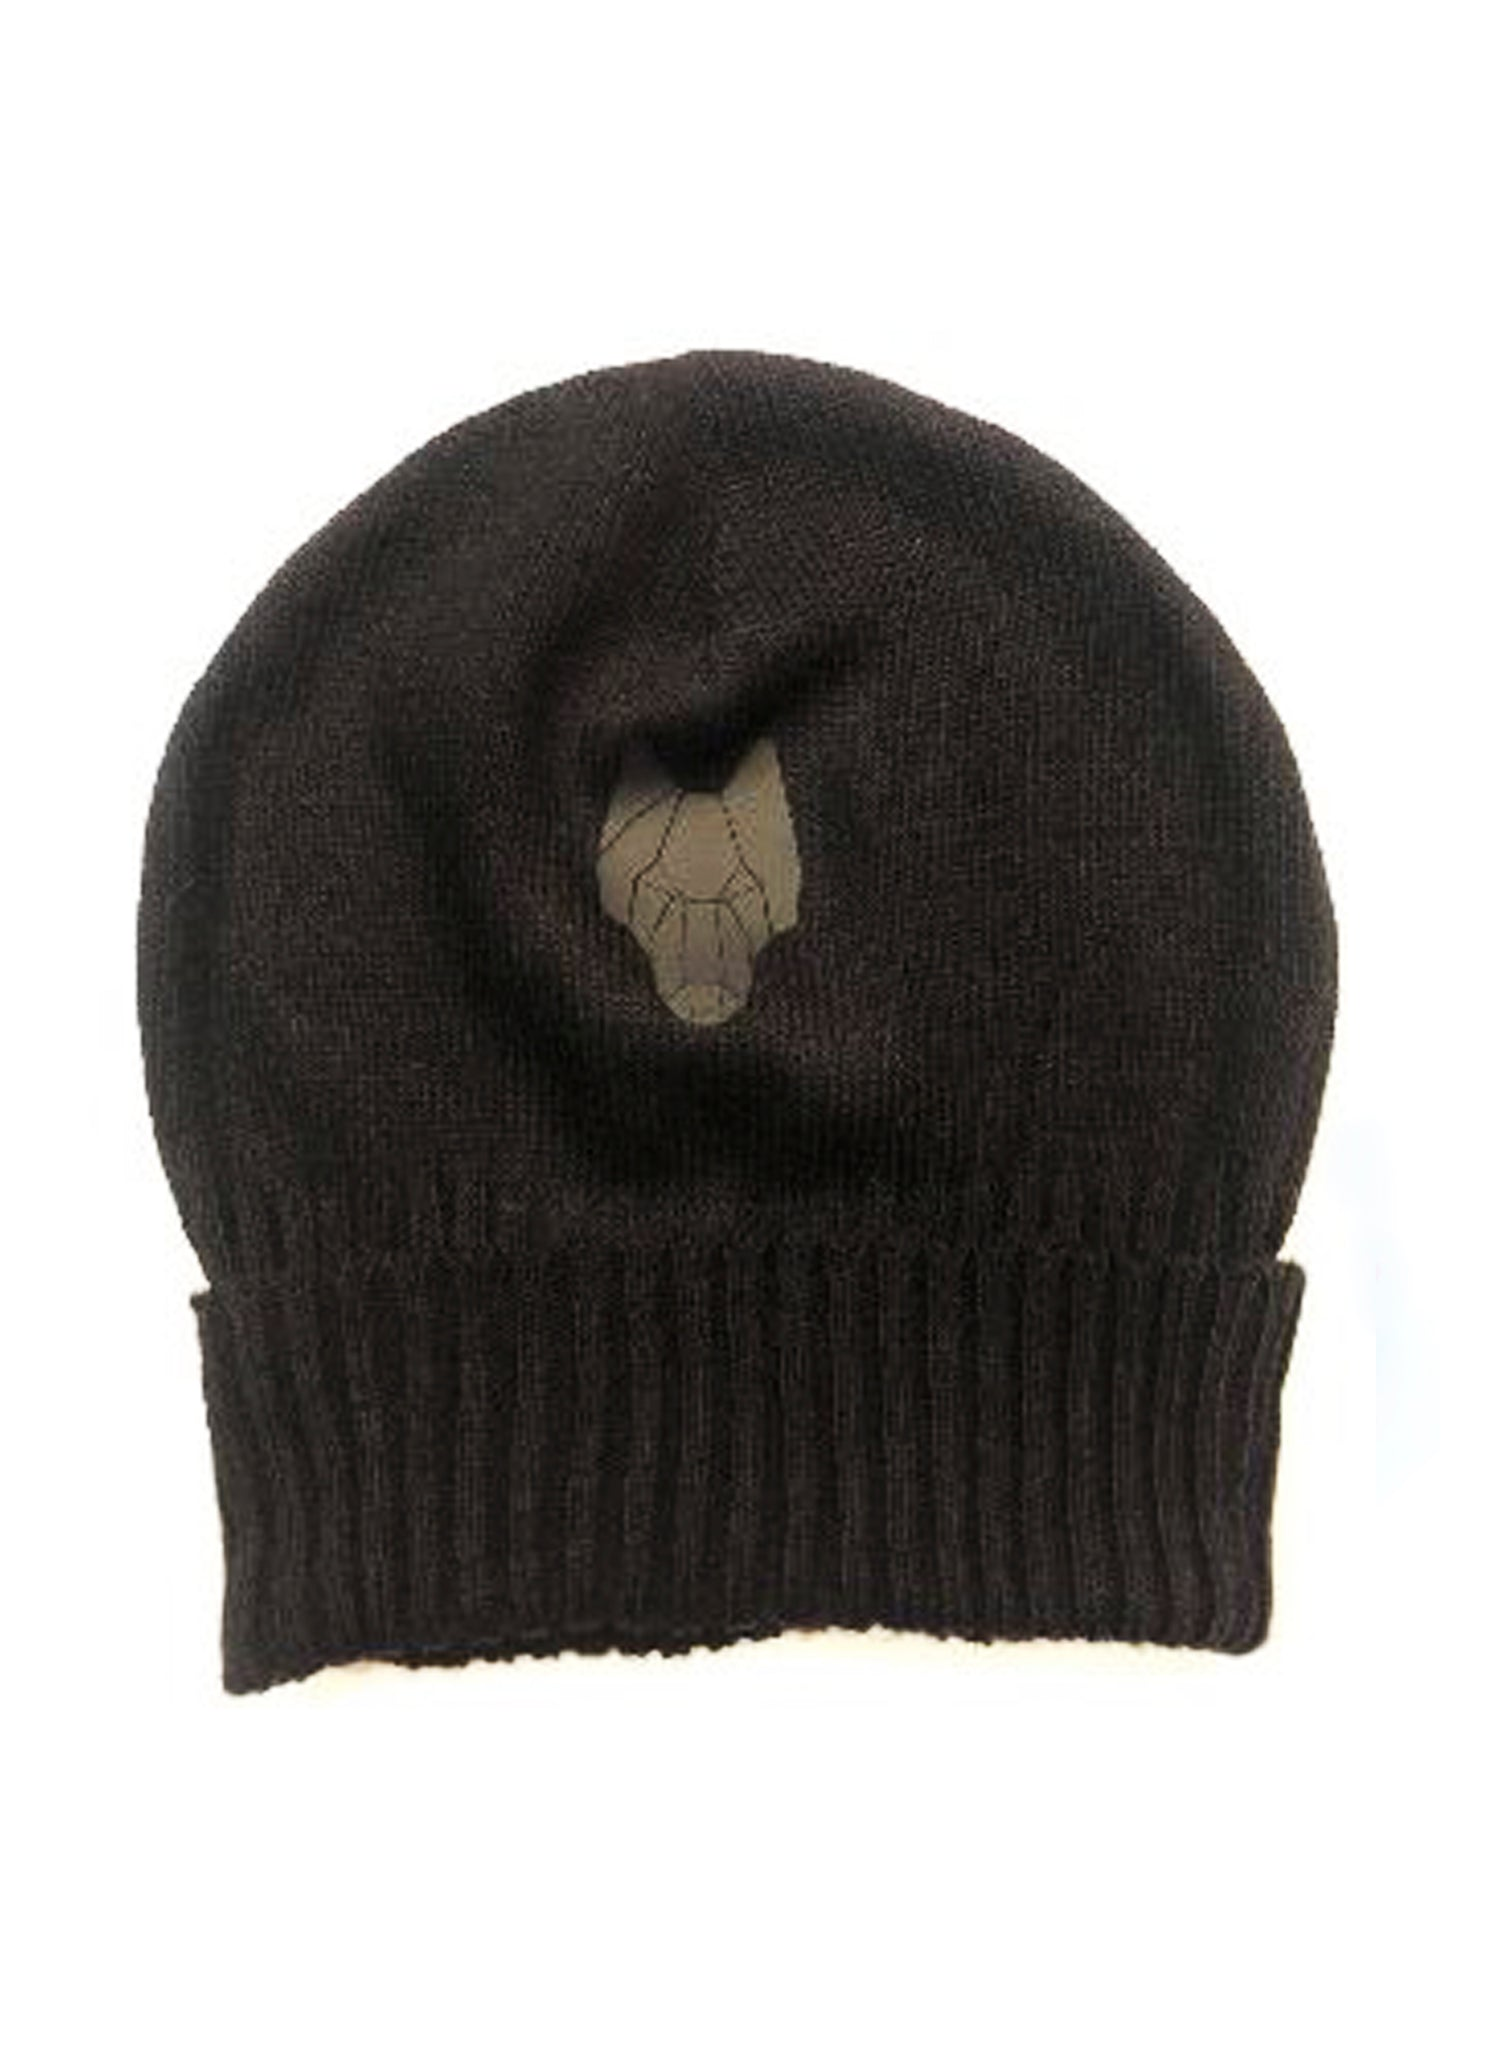 DARK STREET Beanie with large logo